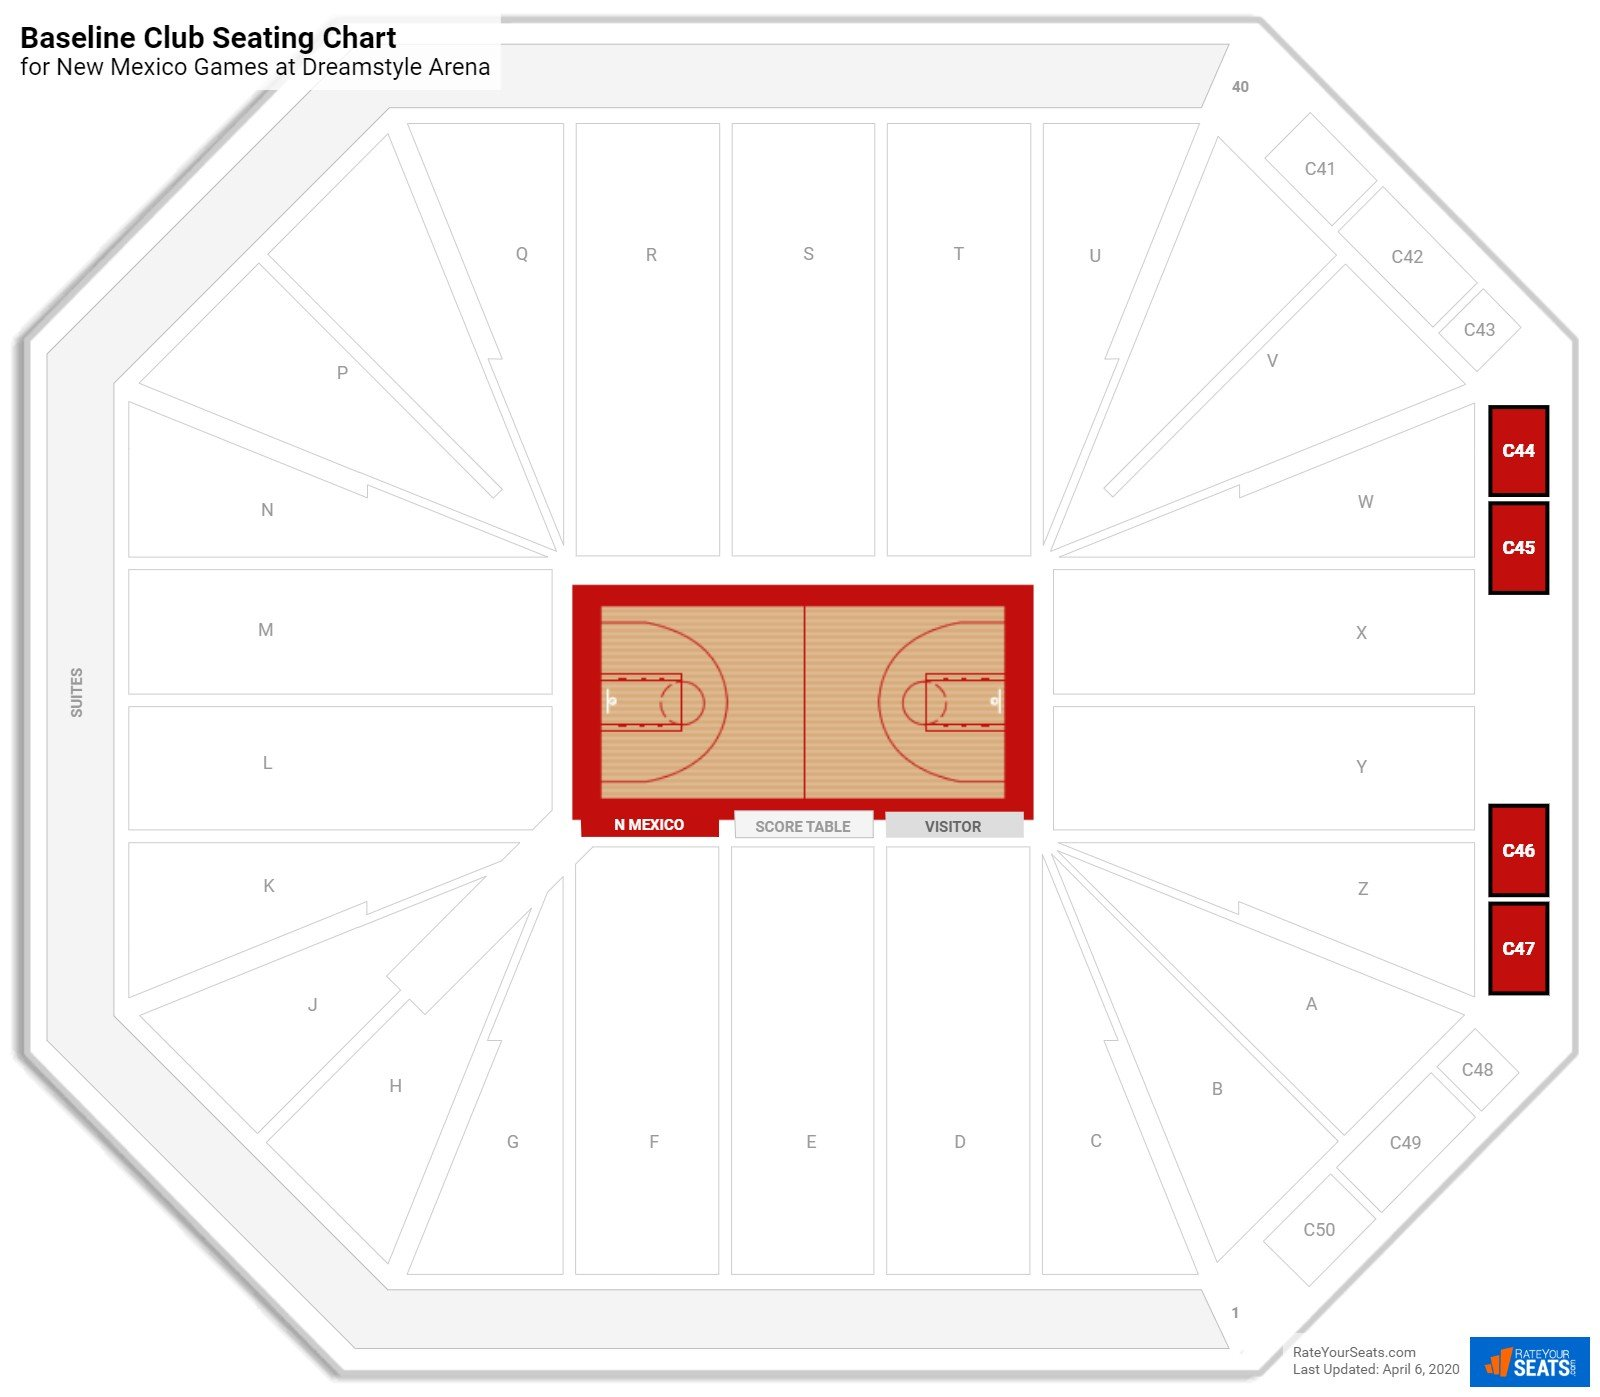 Pit Arena Baseline Club seating chart